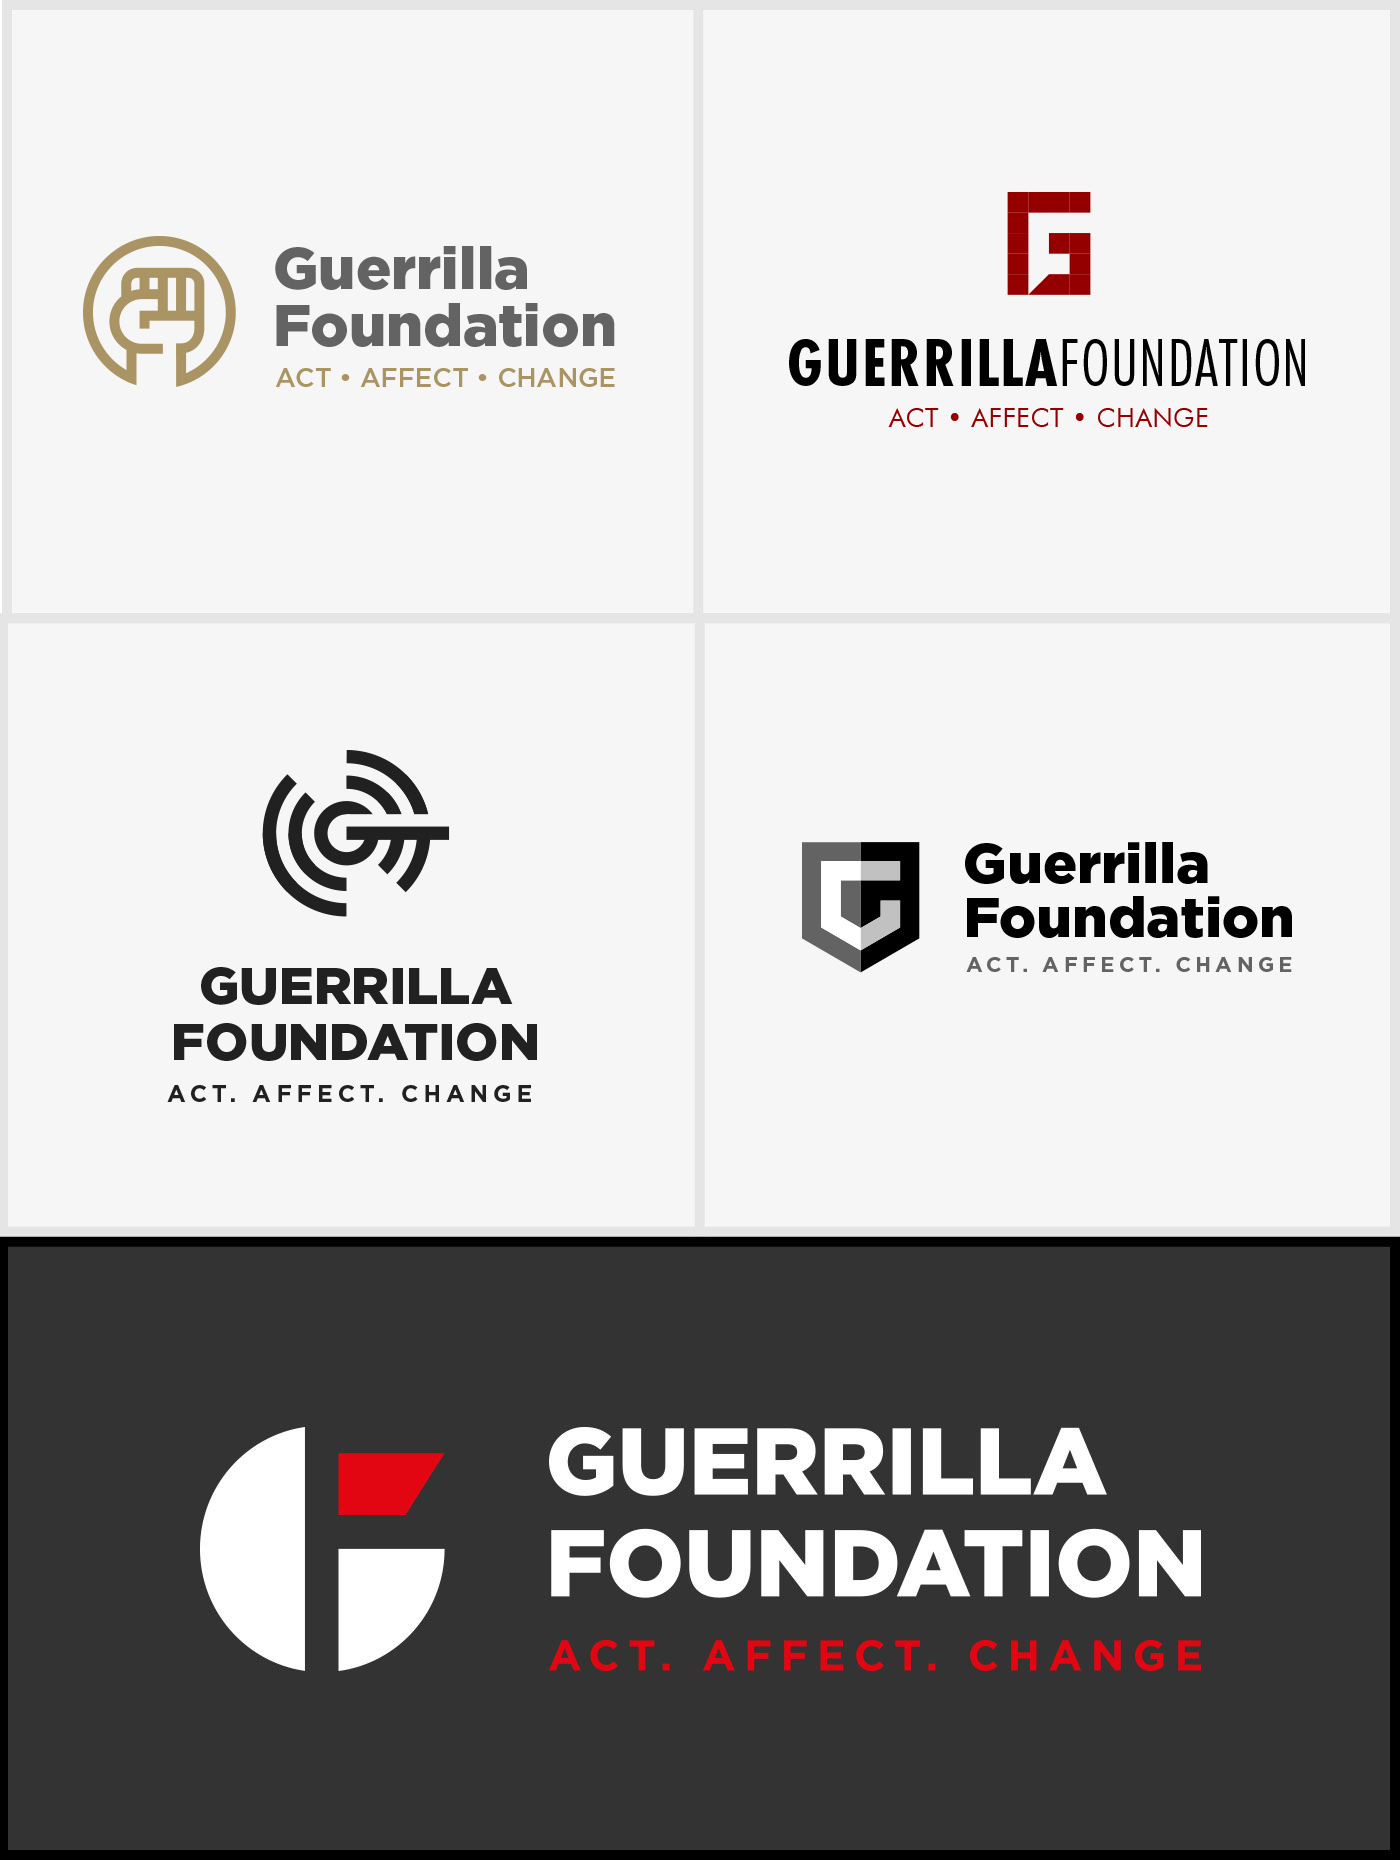 Creating image identity for the Guerrilla Foundation